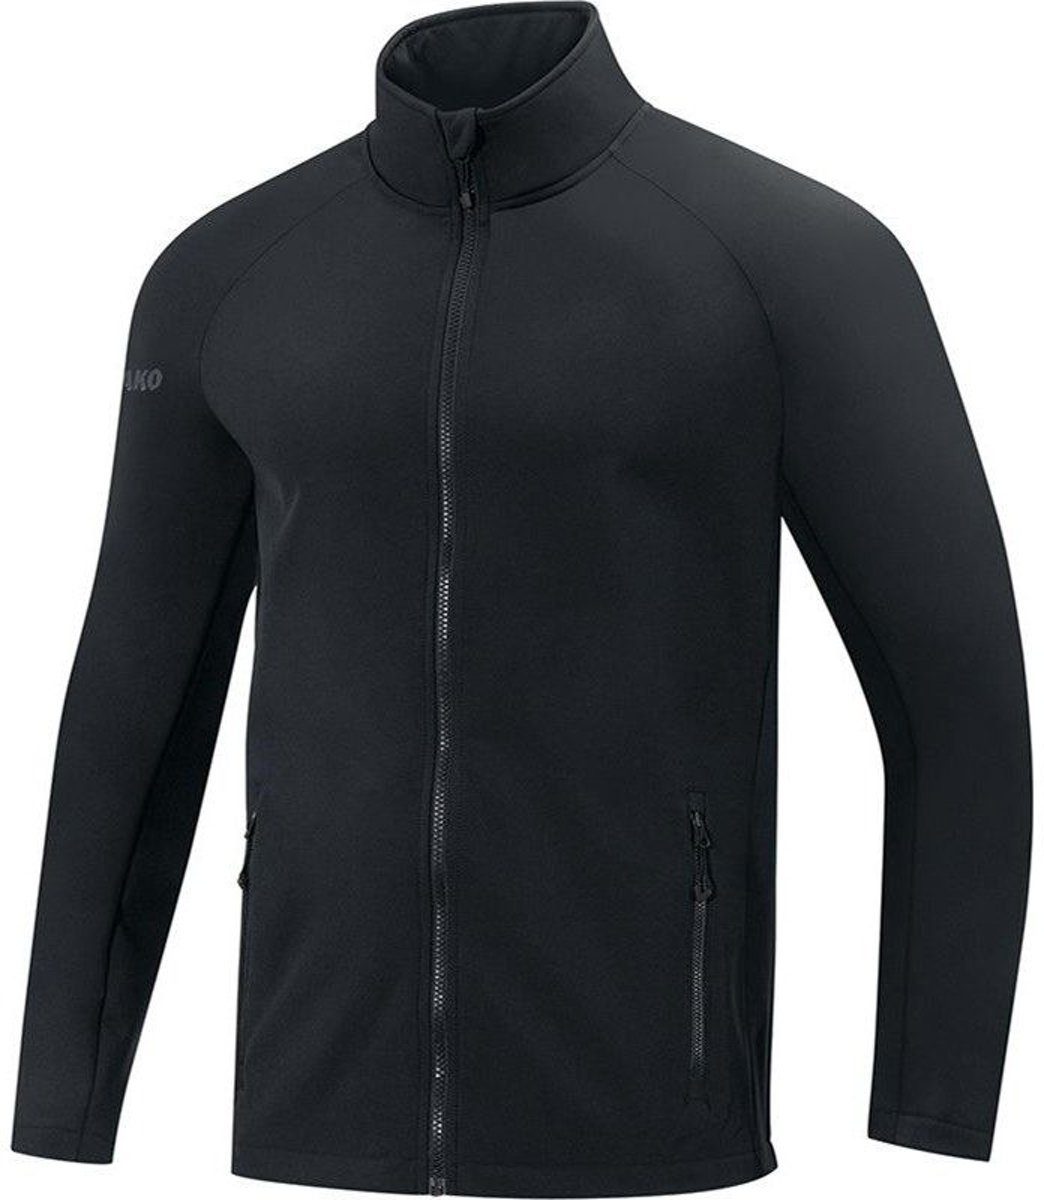 Jako Team Dames Softshell Jas - Softshelljassen  - zwart - 34